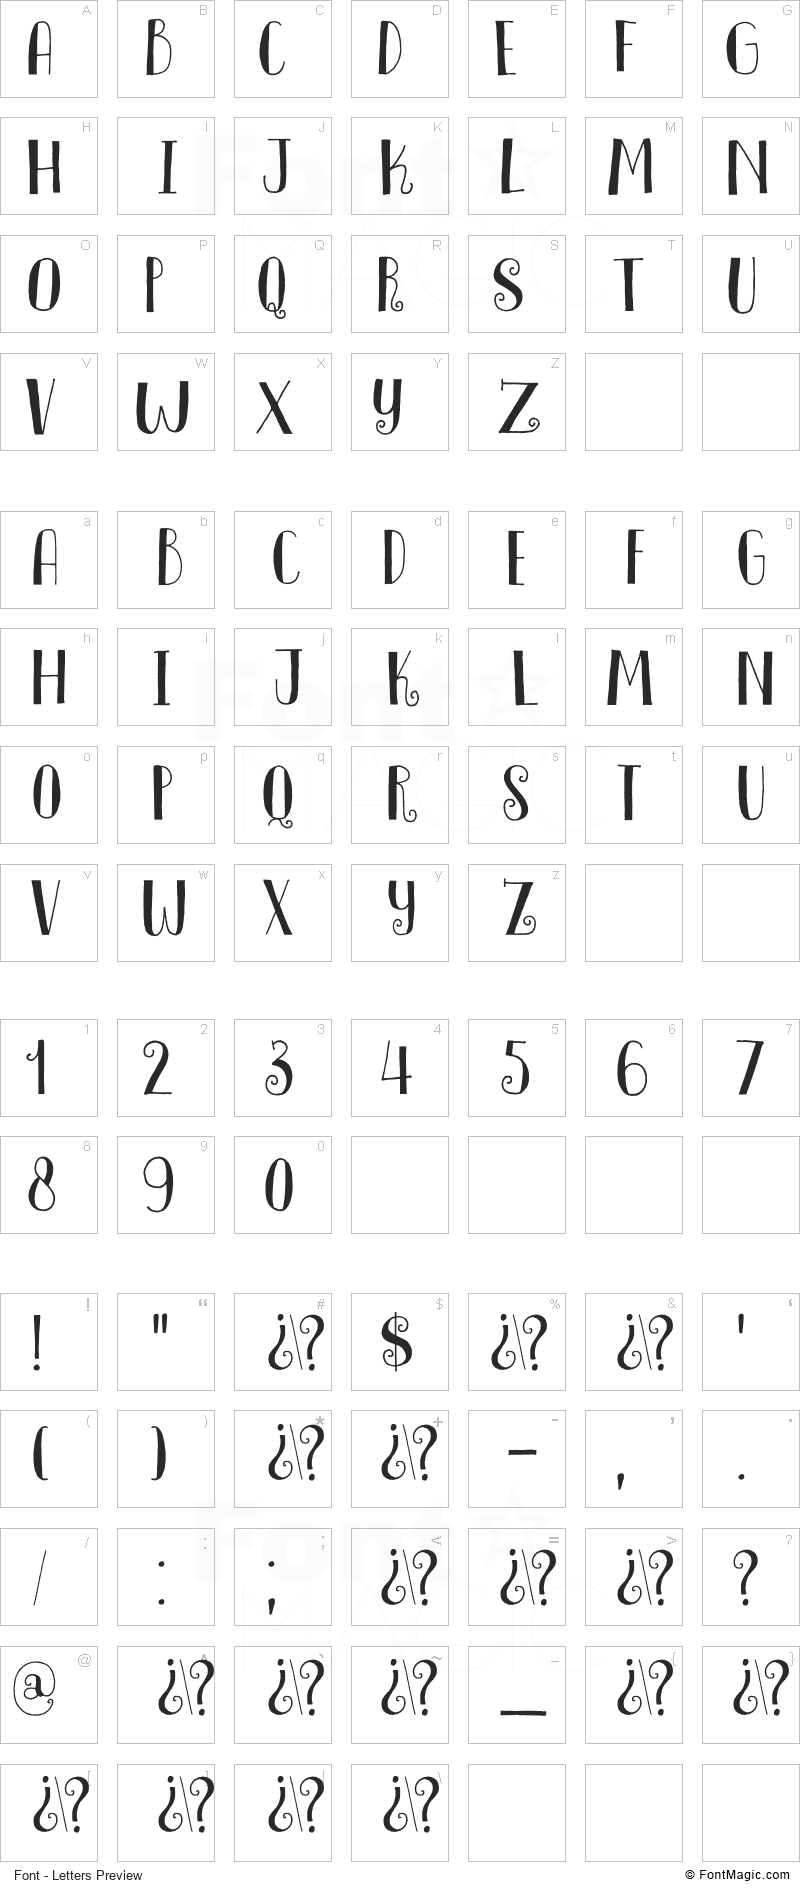 DK Innuendo Font - All Latters Preview Chart